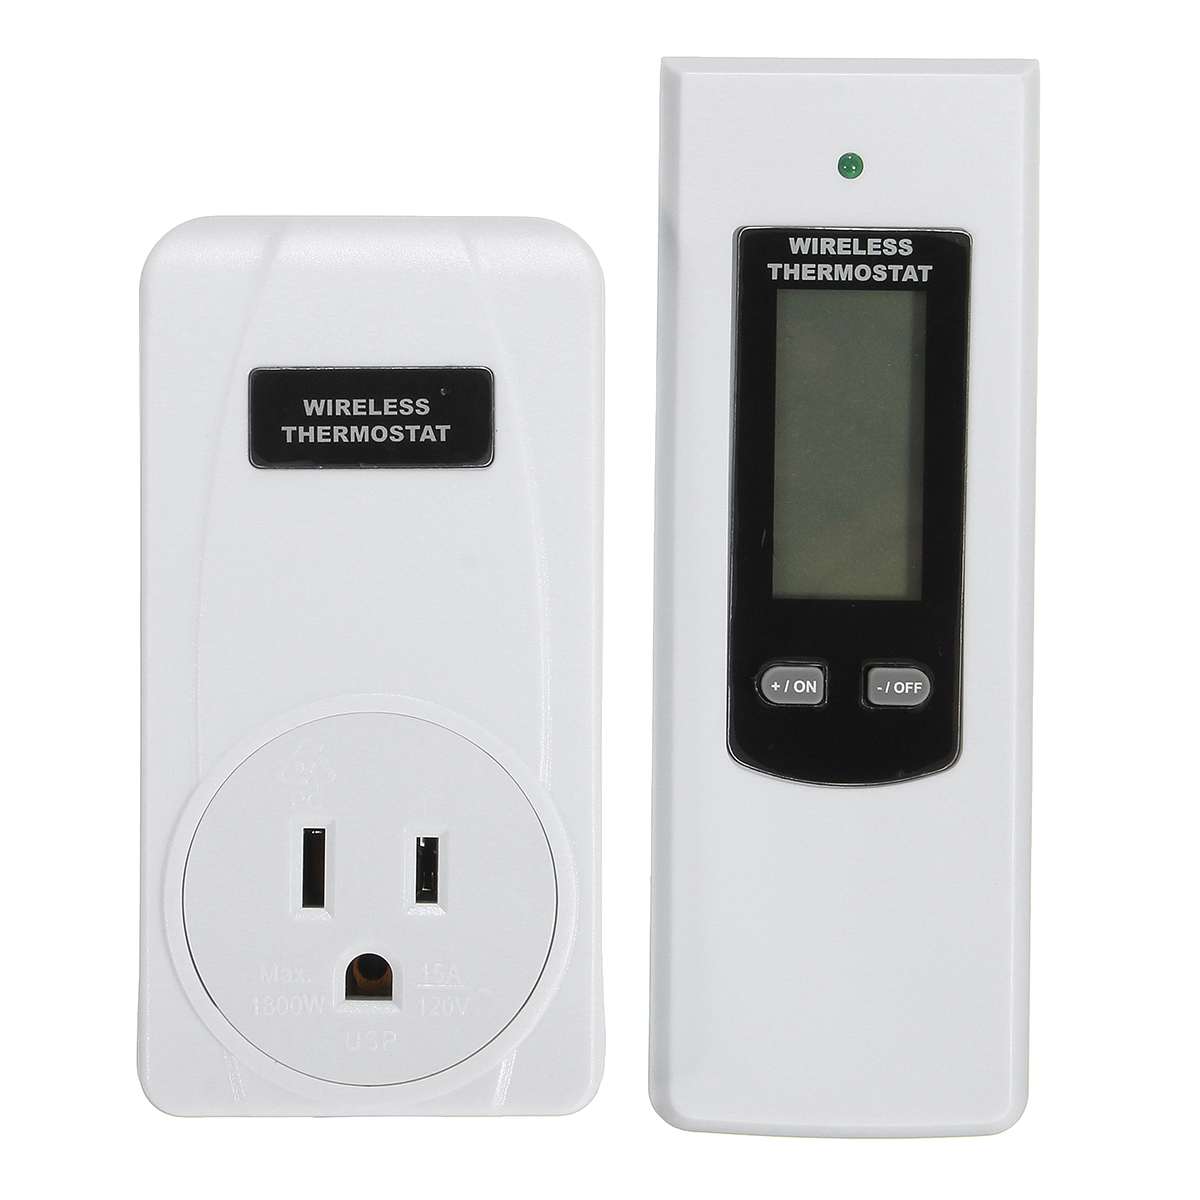 TS-808 RF 433MHz Remote Control LCD Wireless Temperature Thermostat with Alarm Function